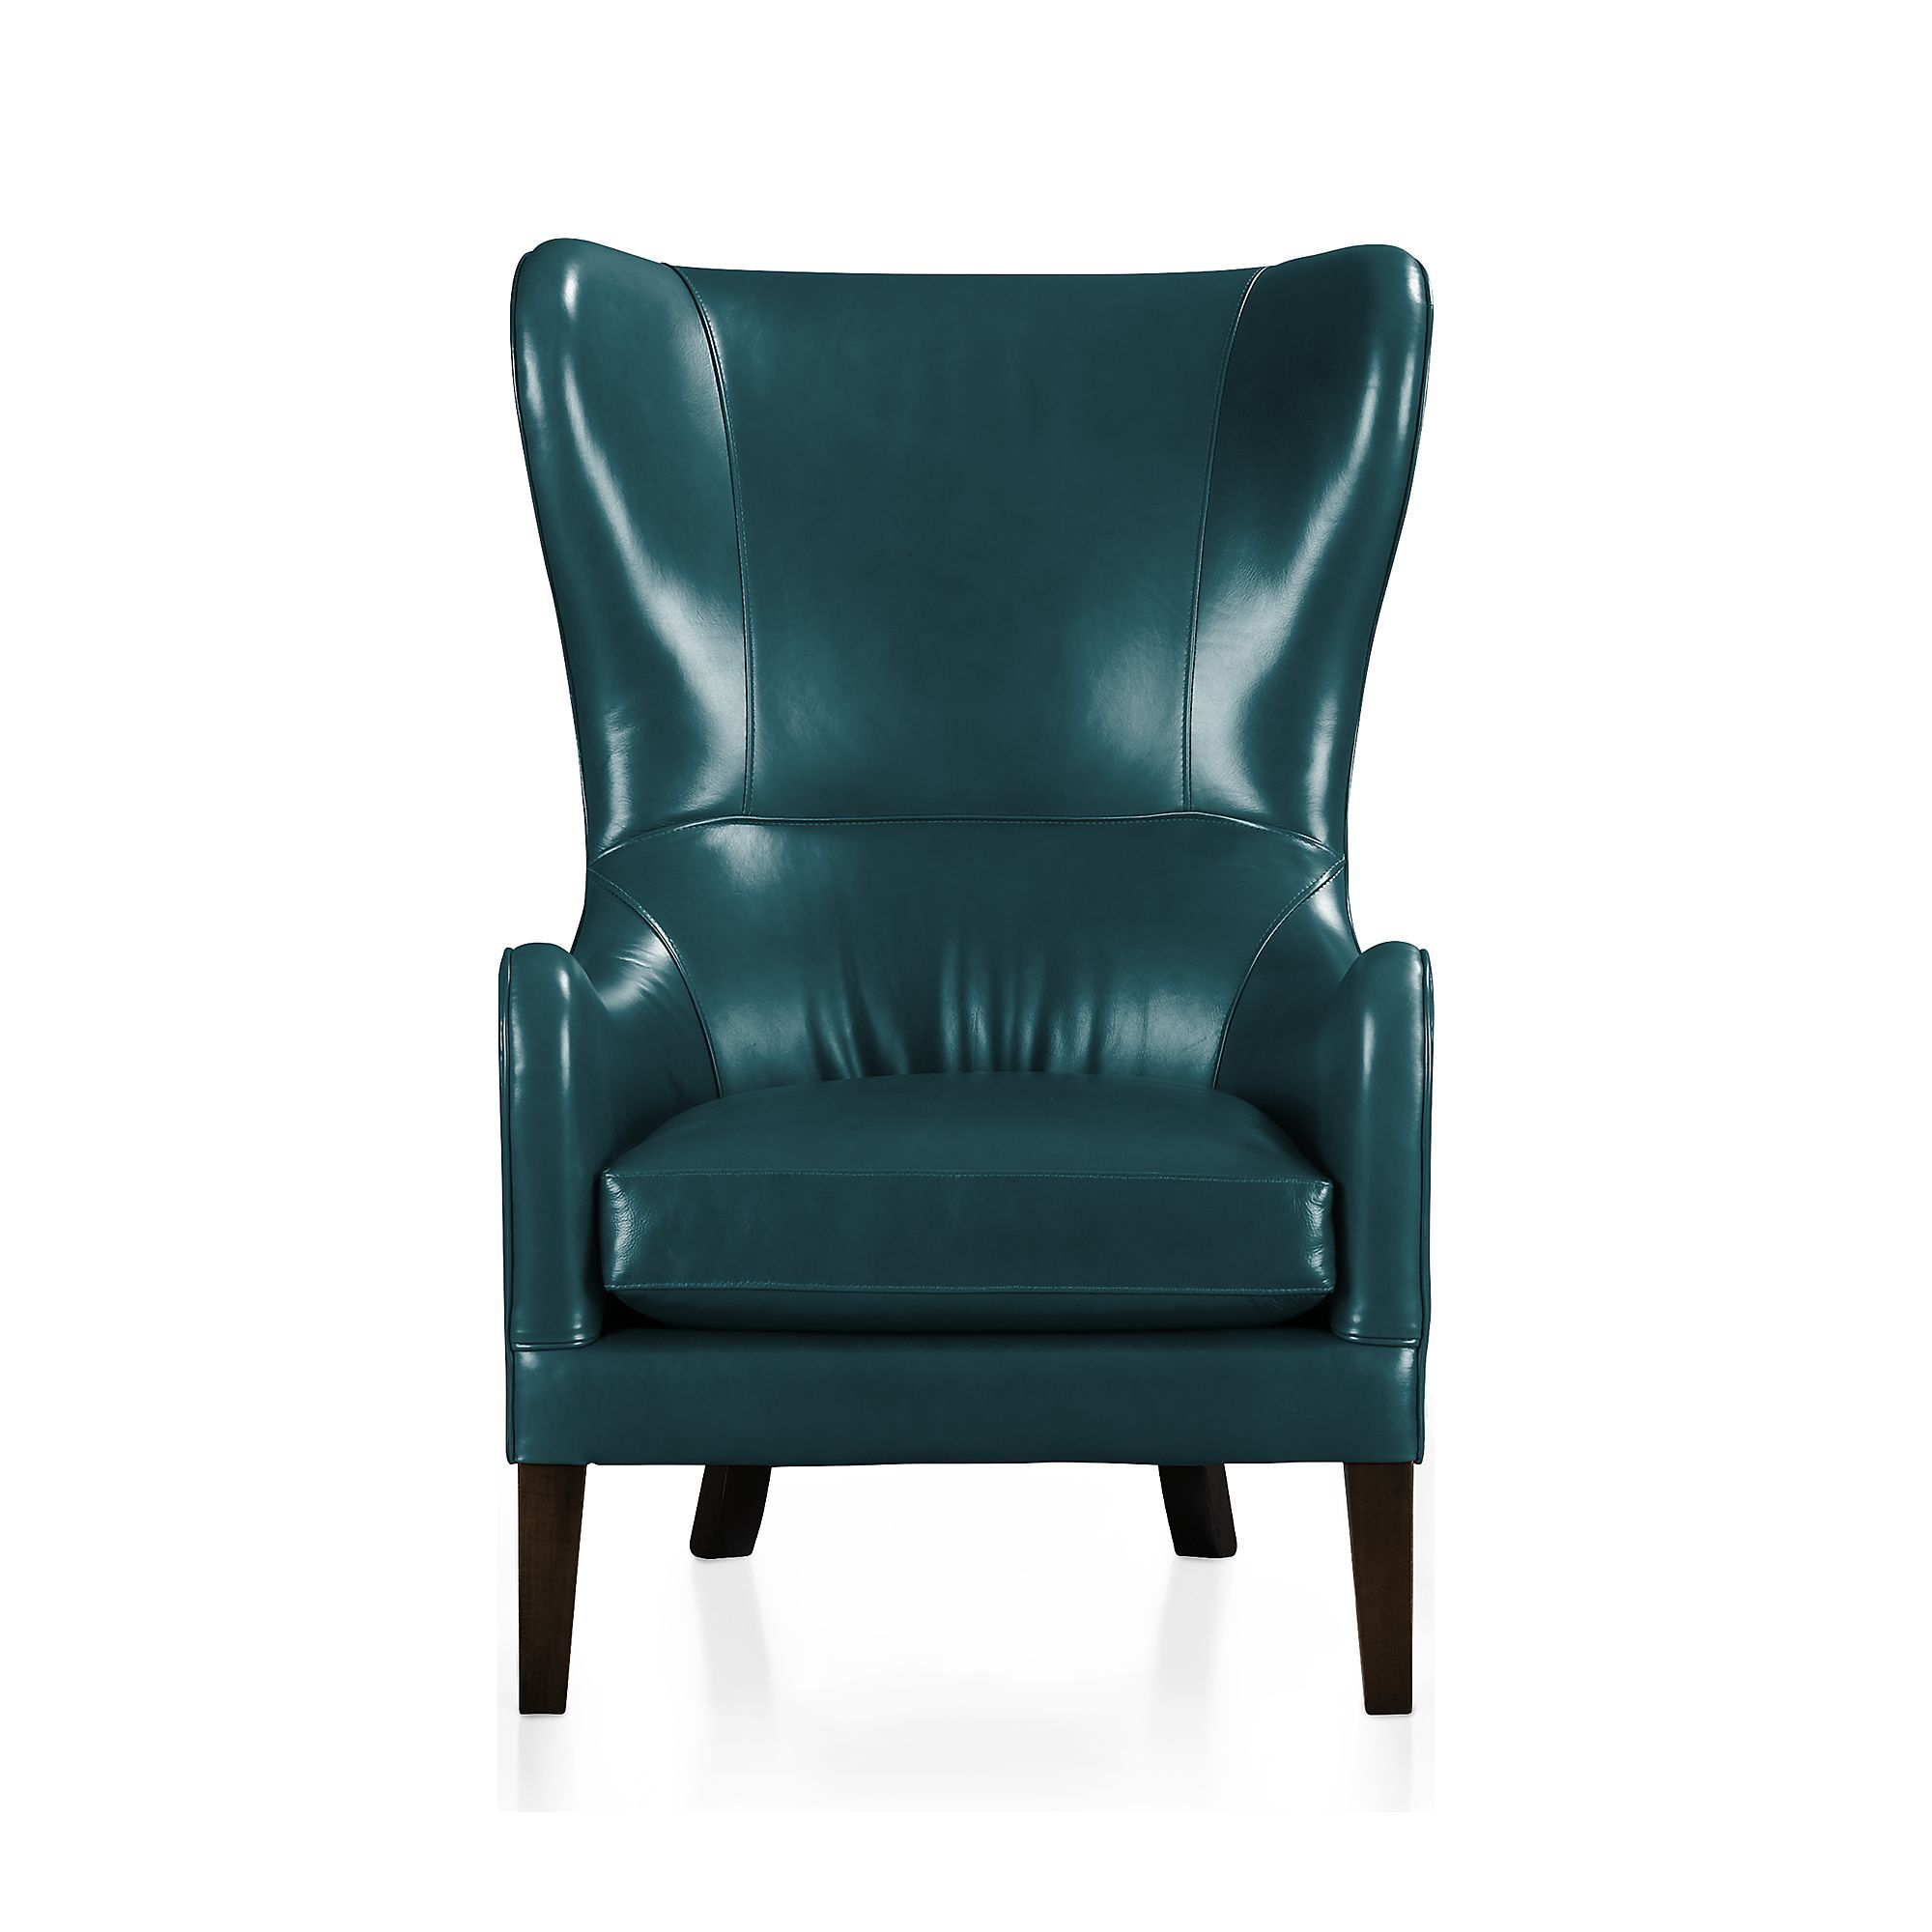 Shop Garbo Leather Wingback Chair.   Garbo exudes comfort with a generous deep seat and high back detailed with self-welting and distinctive French seams.